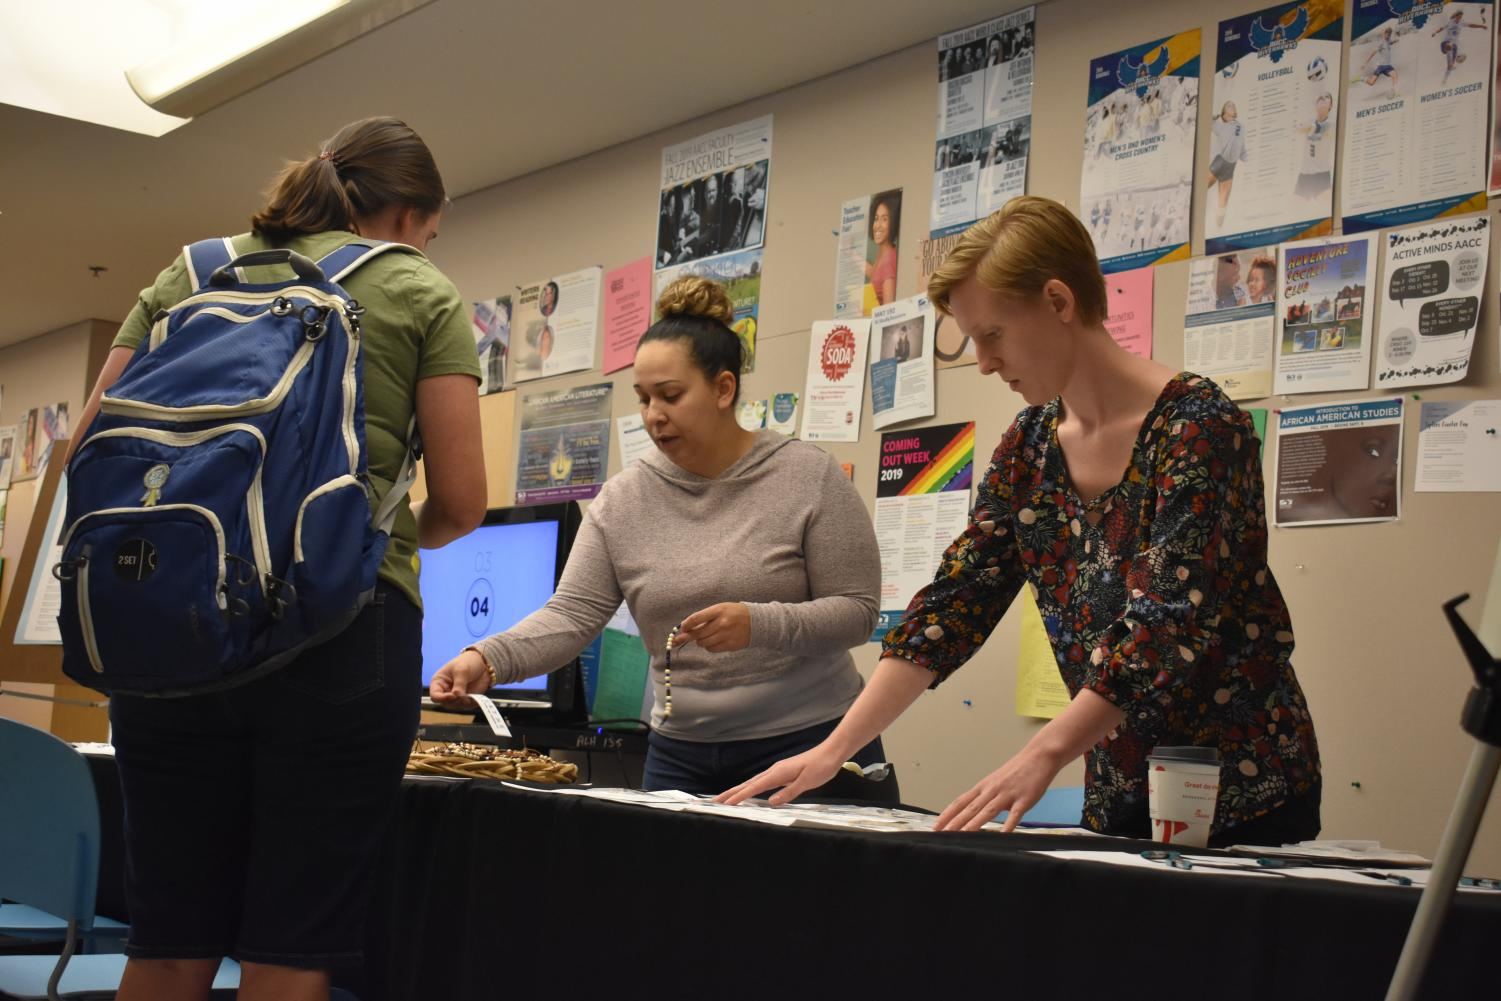 The Health & Wellness Center staff helps students deal with stress and gives out bracelets and gratitude journals. Above, Outreach Coordinator Rodaelys Rojas (left) and Peer Health Educator Madeline Piper with a student.